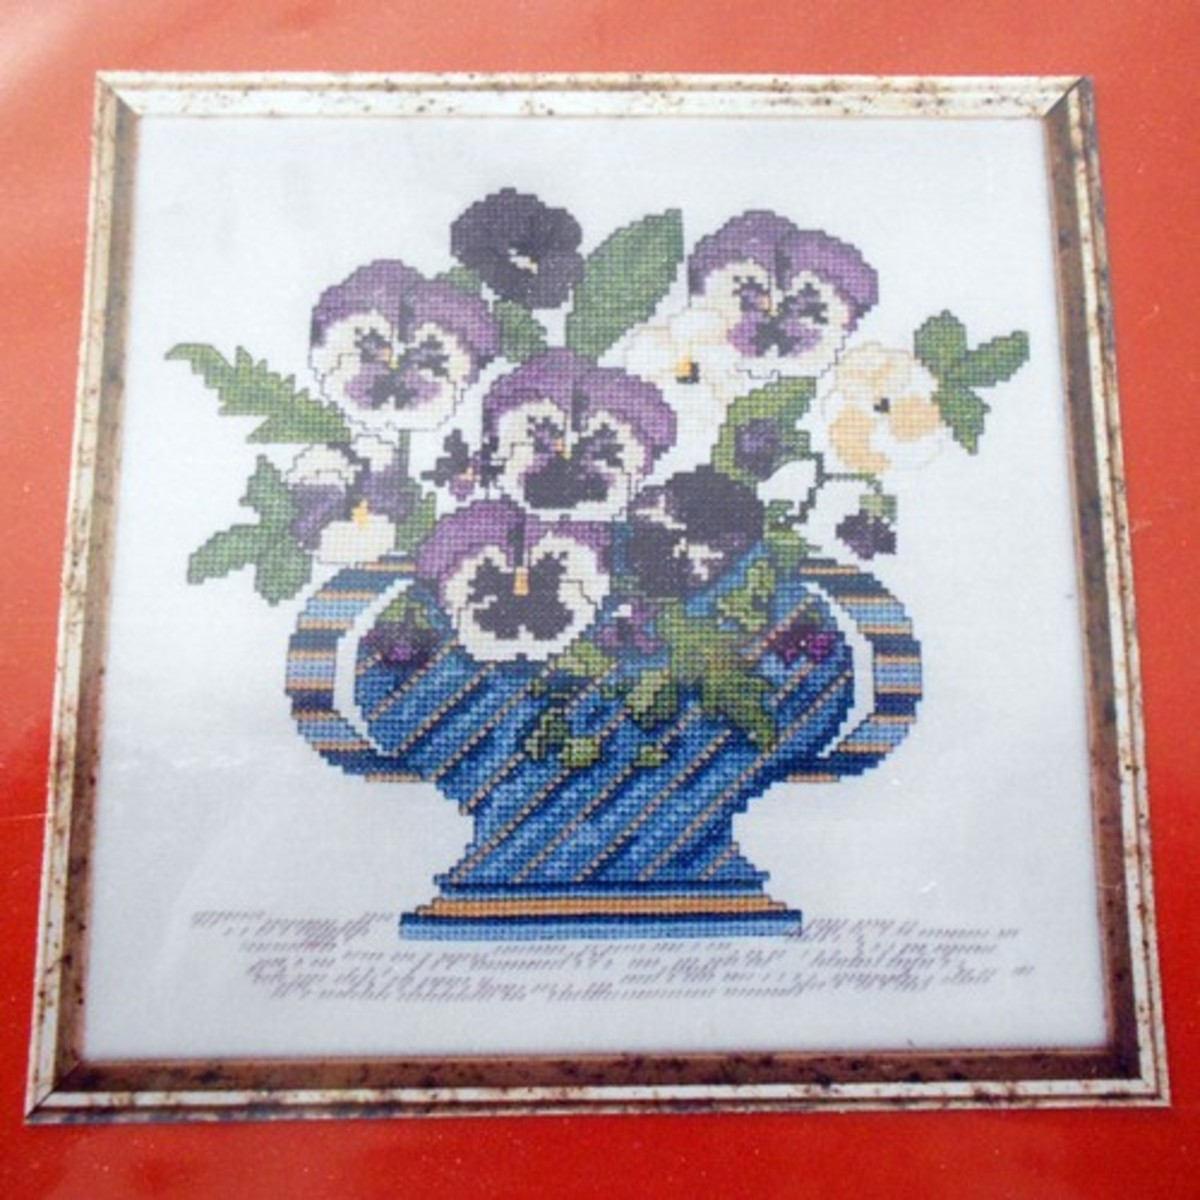 This cross-stitch showcases the traditional pansy flower.